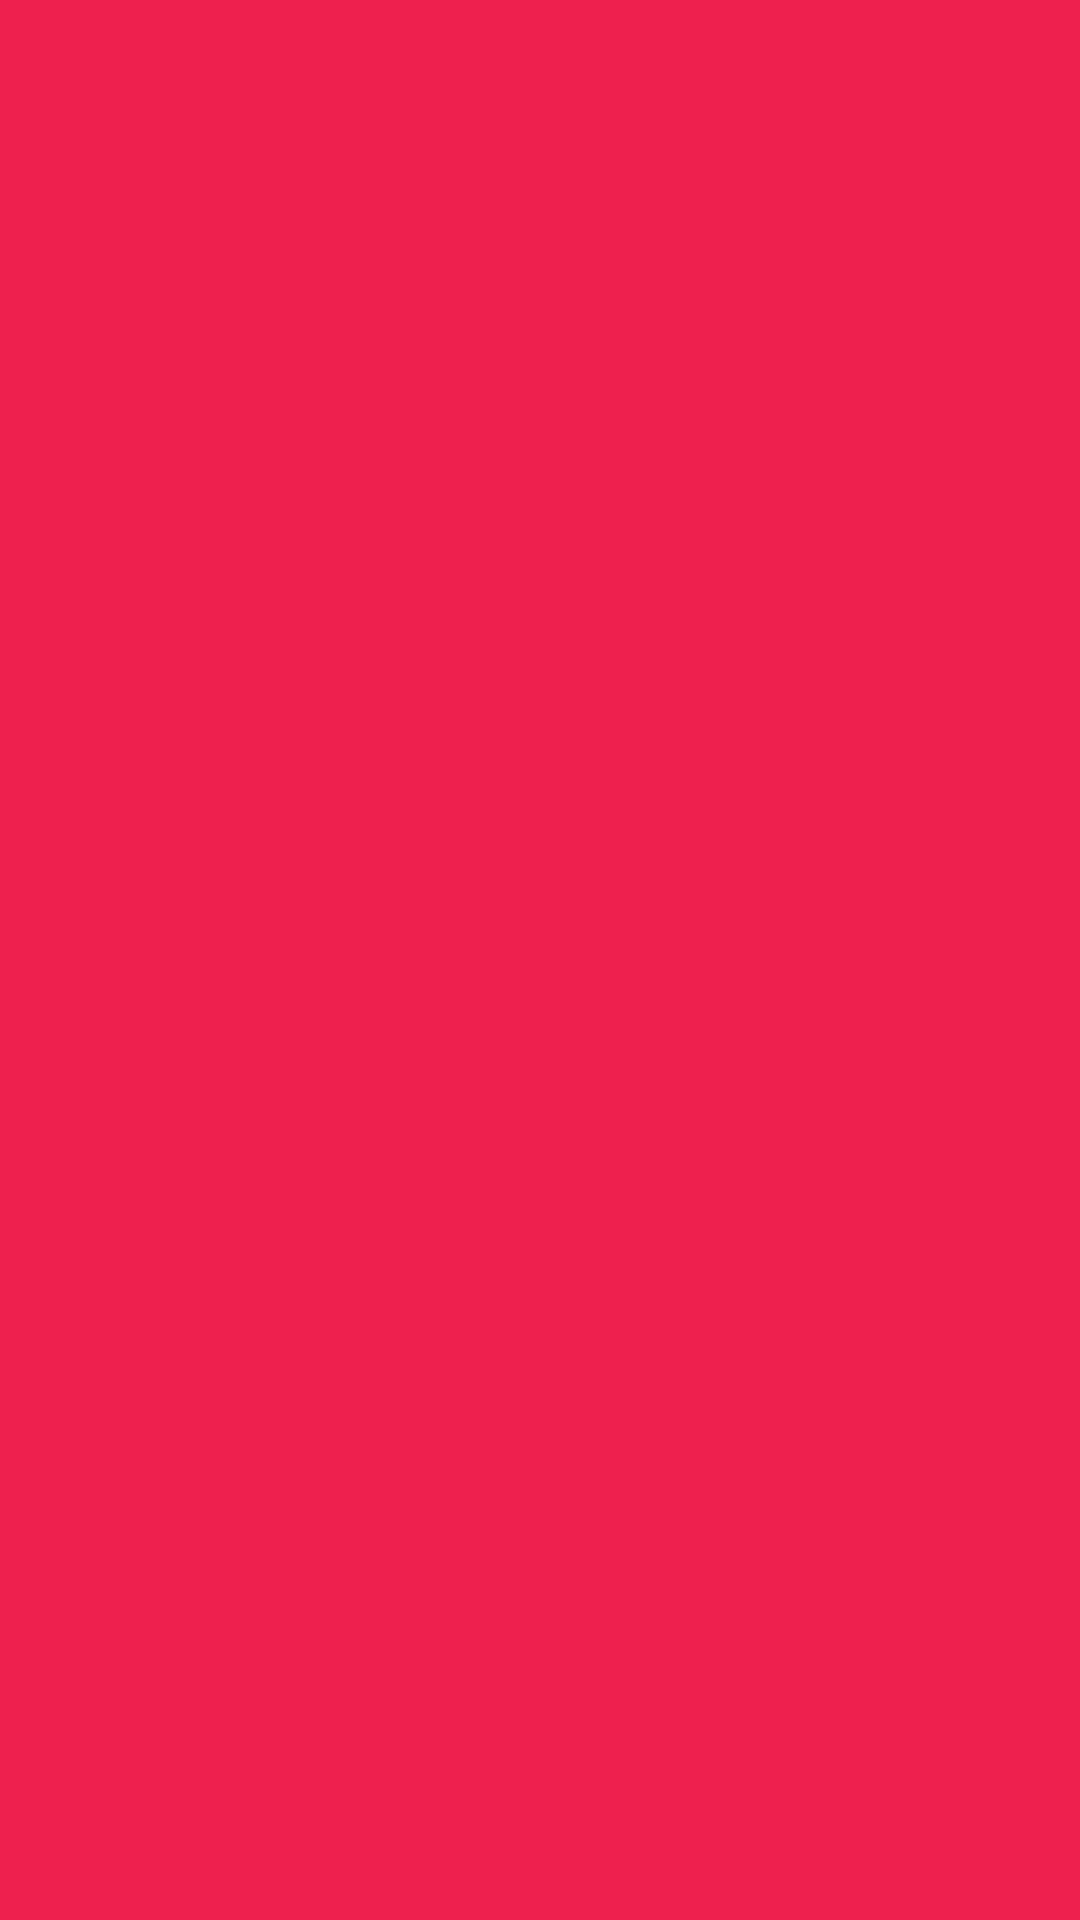 1080x1920 Red Crayola Solid Color Background